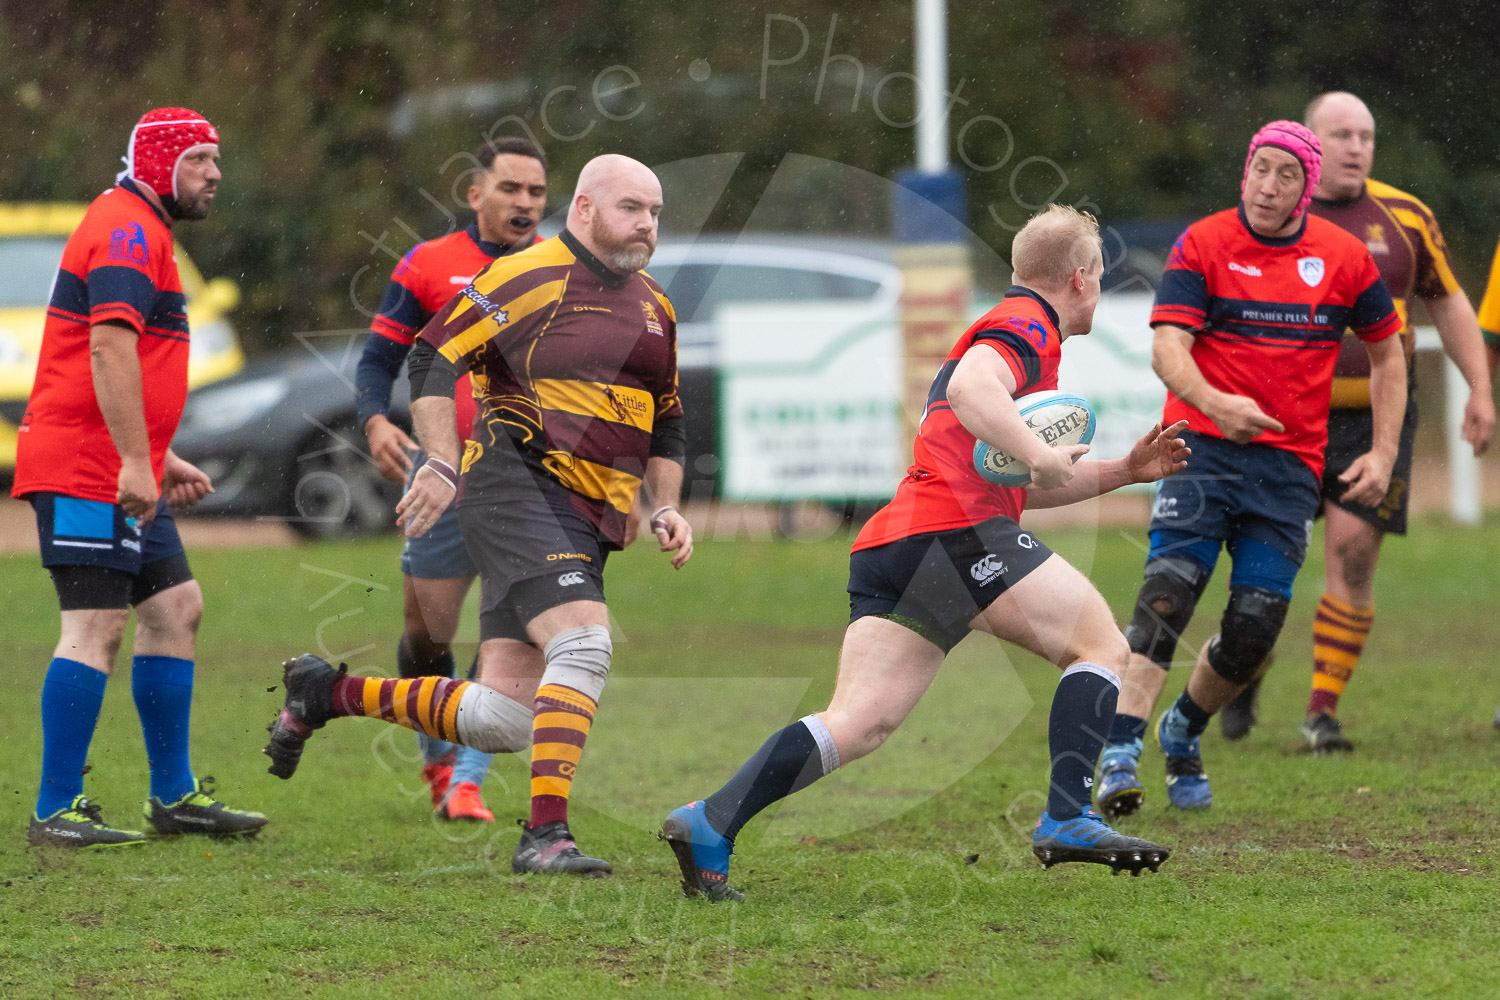 20181027 Amp Extras vs St Neots 2nd XV #2534